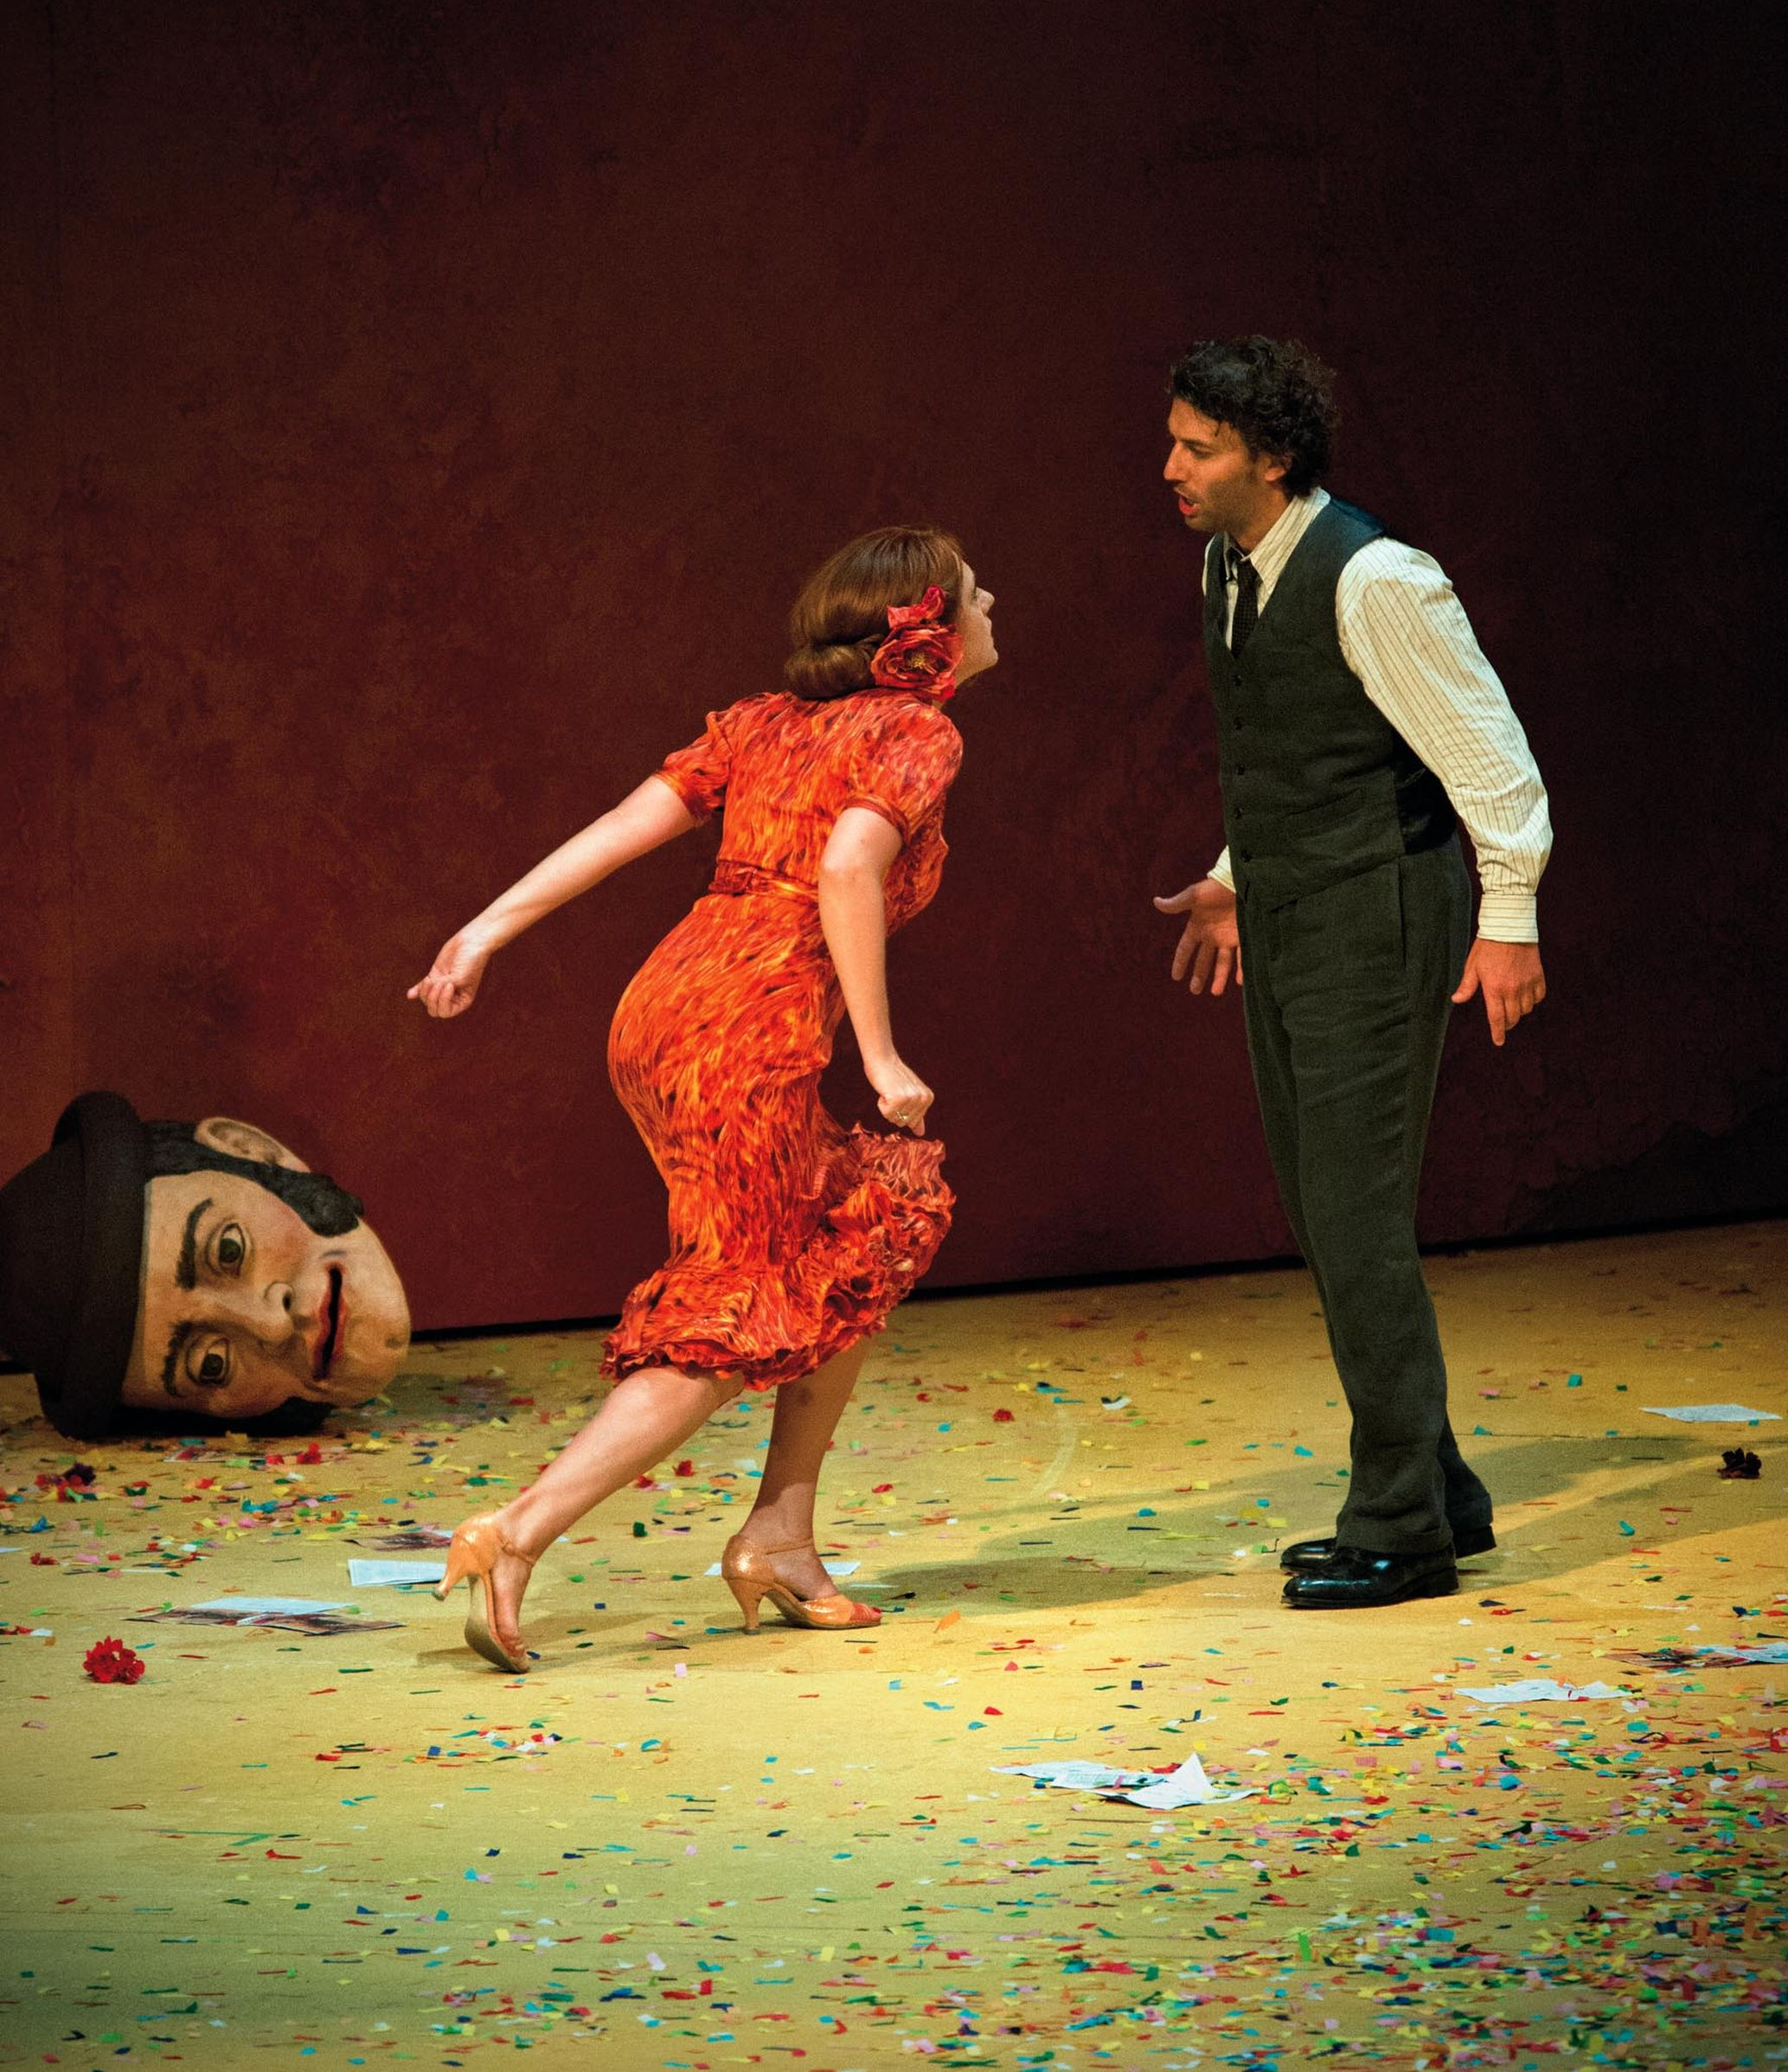 Magdalena Kožená and Jonas Kaufmann at the Salzburg Festival 2012